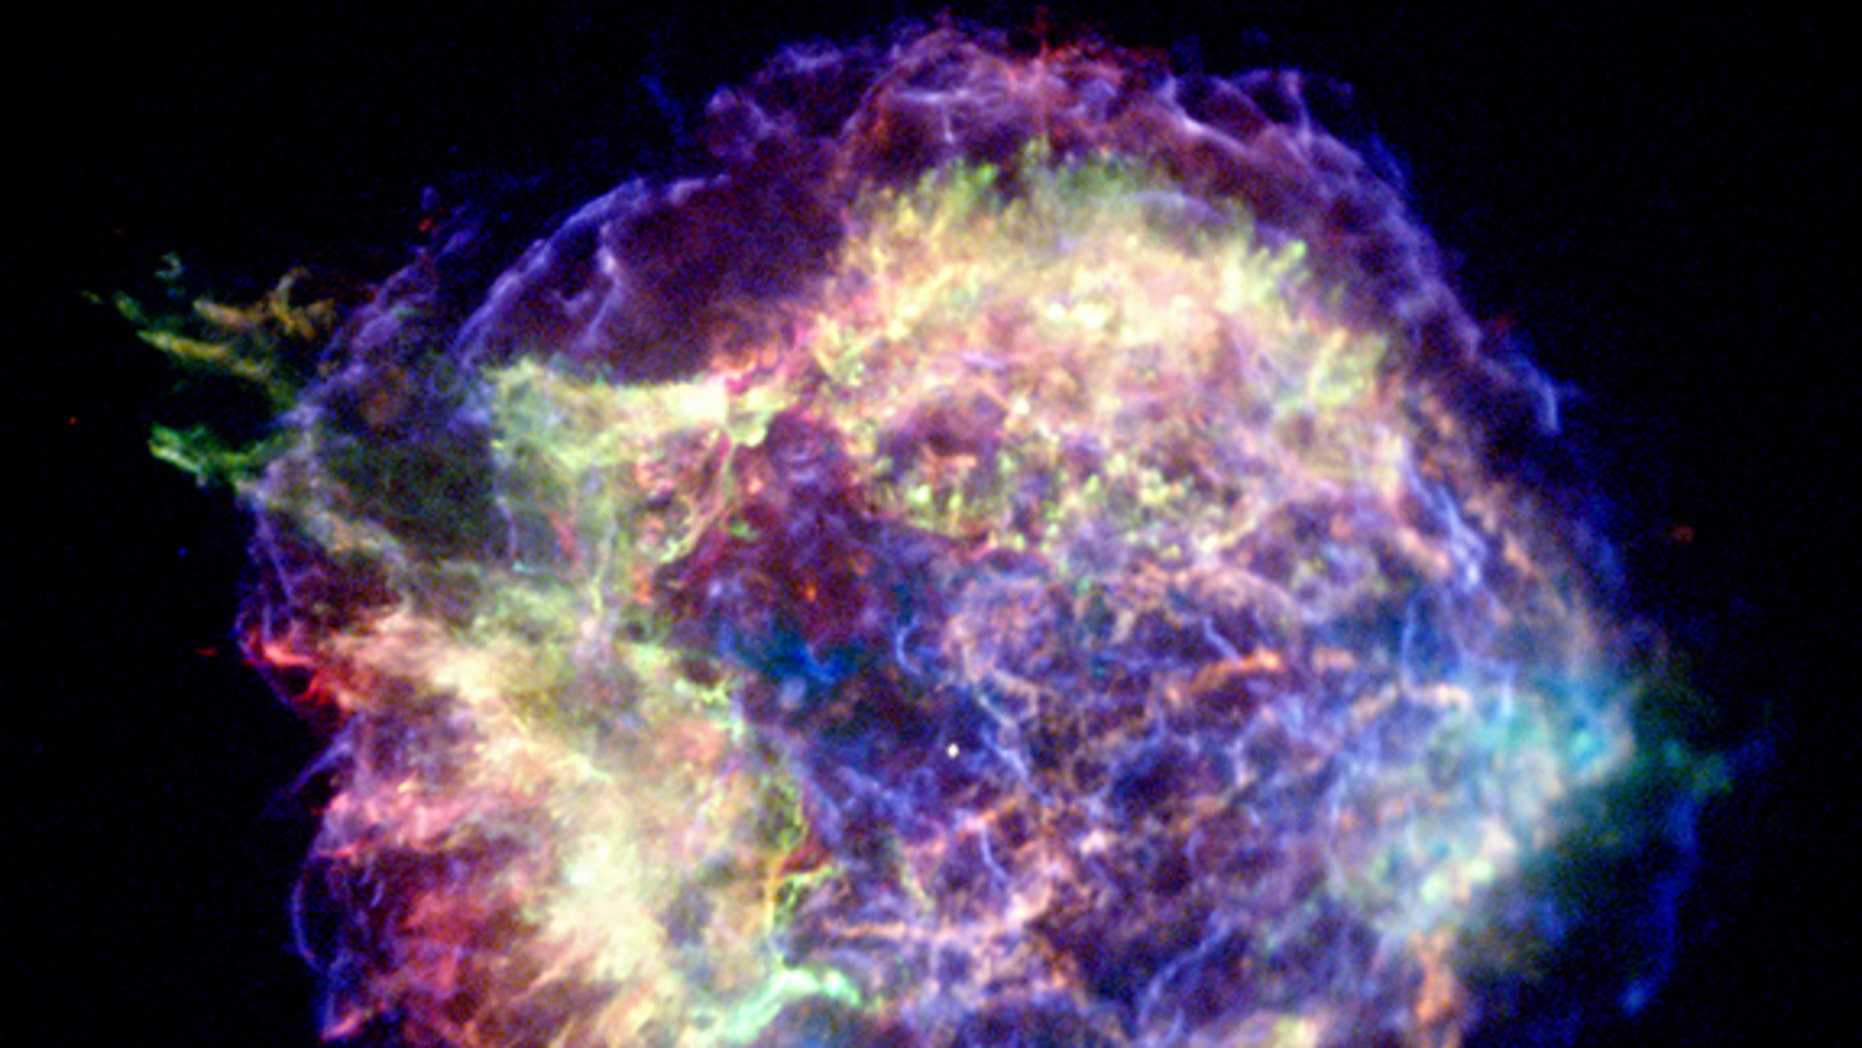 A supernova like that one that formed this remnant, Cassiopeia A, may have sparked the formation of our solar system, an August 2012 study suggests.